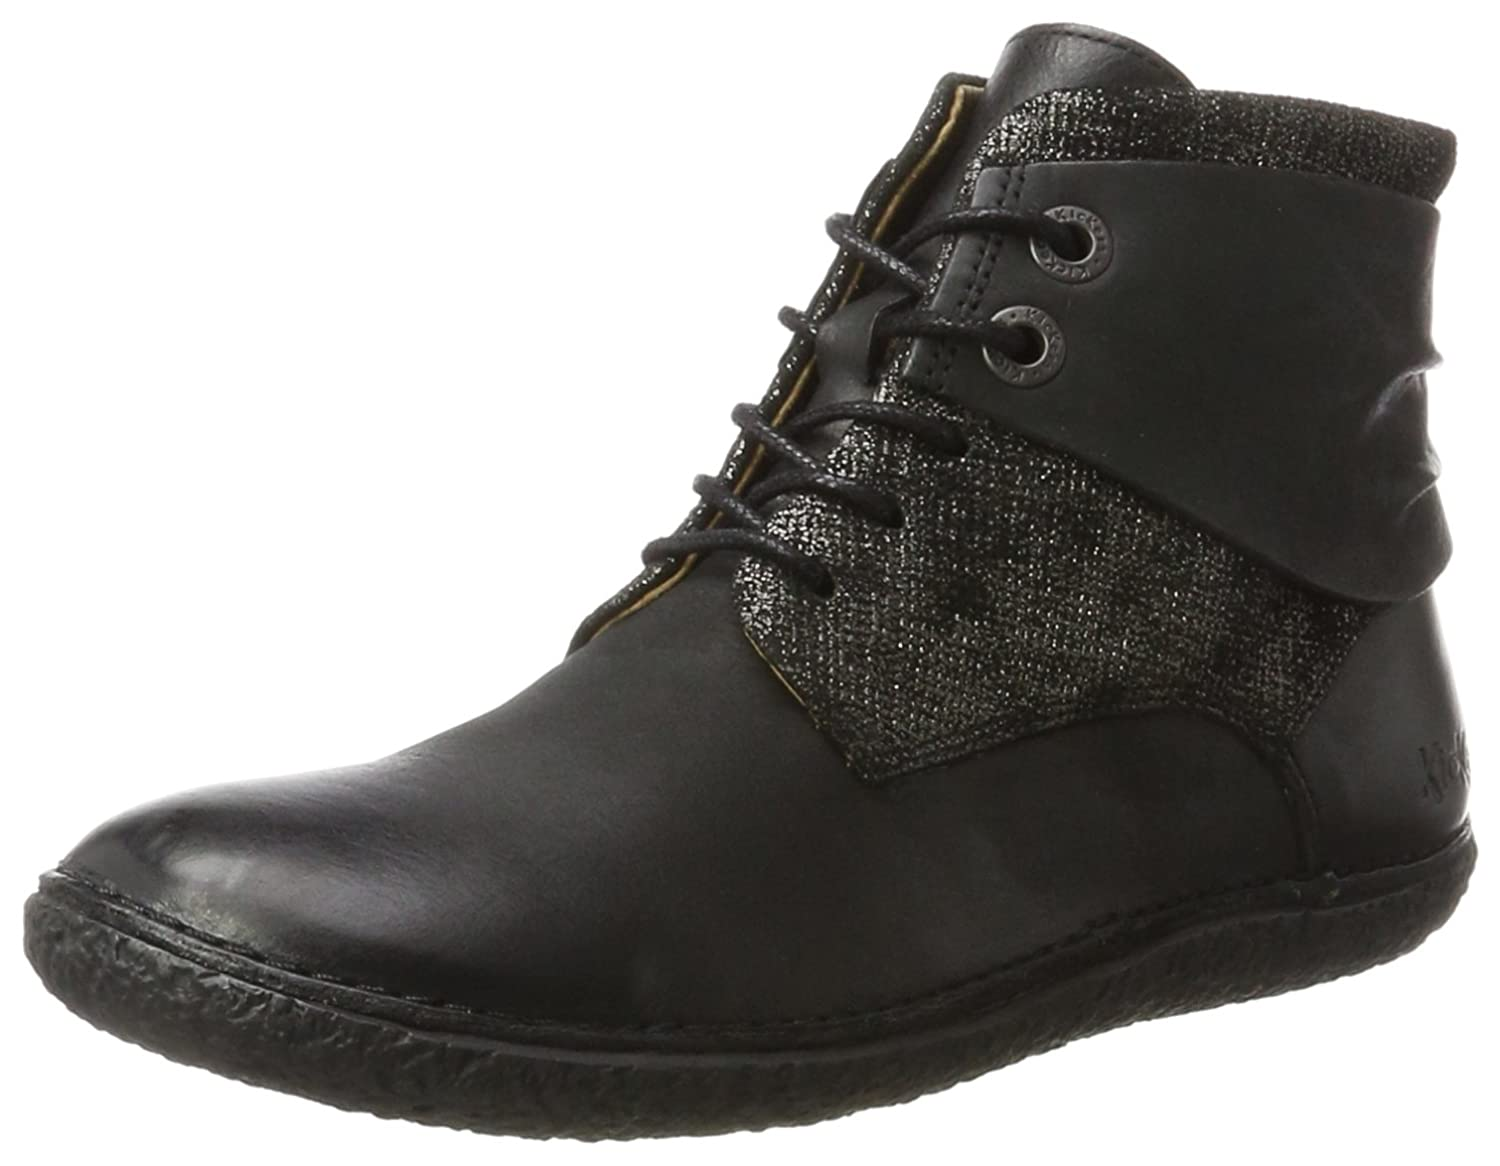 Kickers Brillant) Hobylow, Bottines Bottines Noir Classiques Femme Noir (Noir Brillant) 15c1a28 - latesttechnology.space